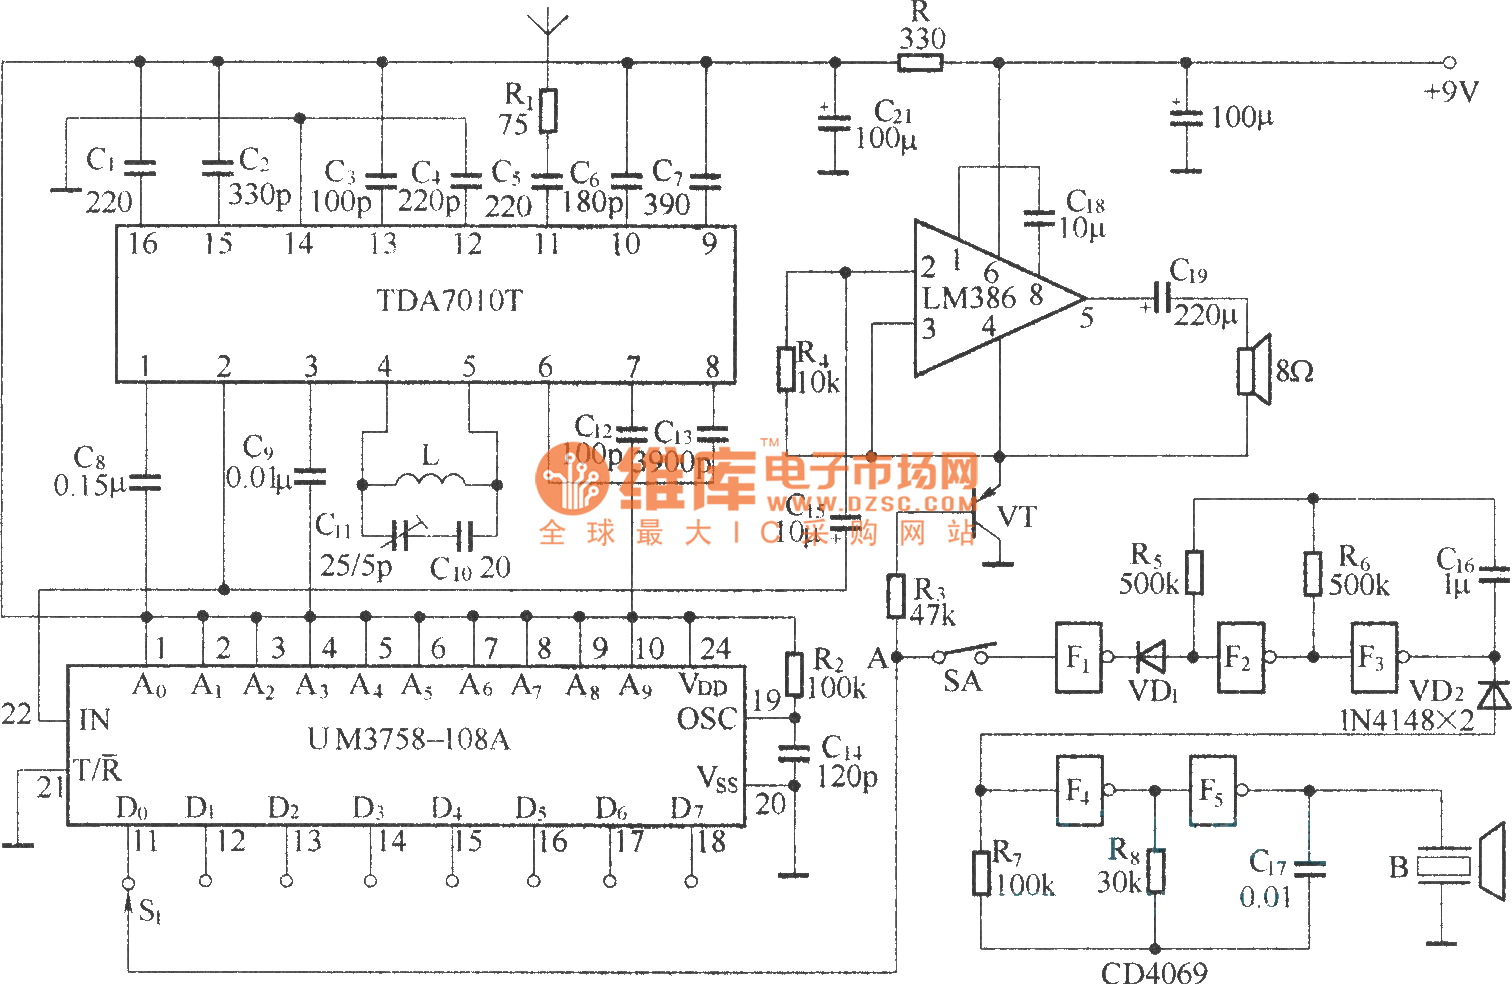 Small Wireless Call System Circuit Diagram Ba1401 Tda7010t Basictriacswitches Controlcircuit Seekiccom